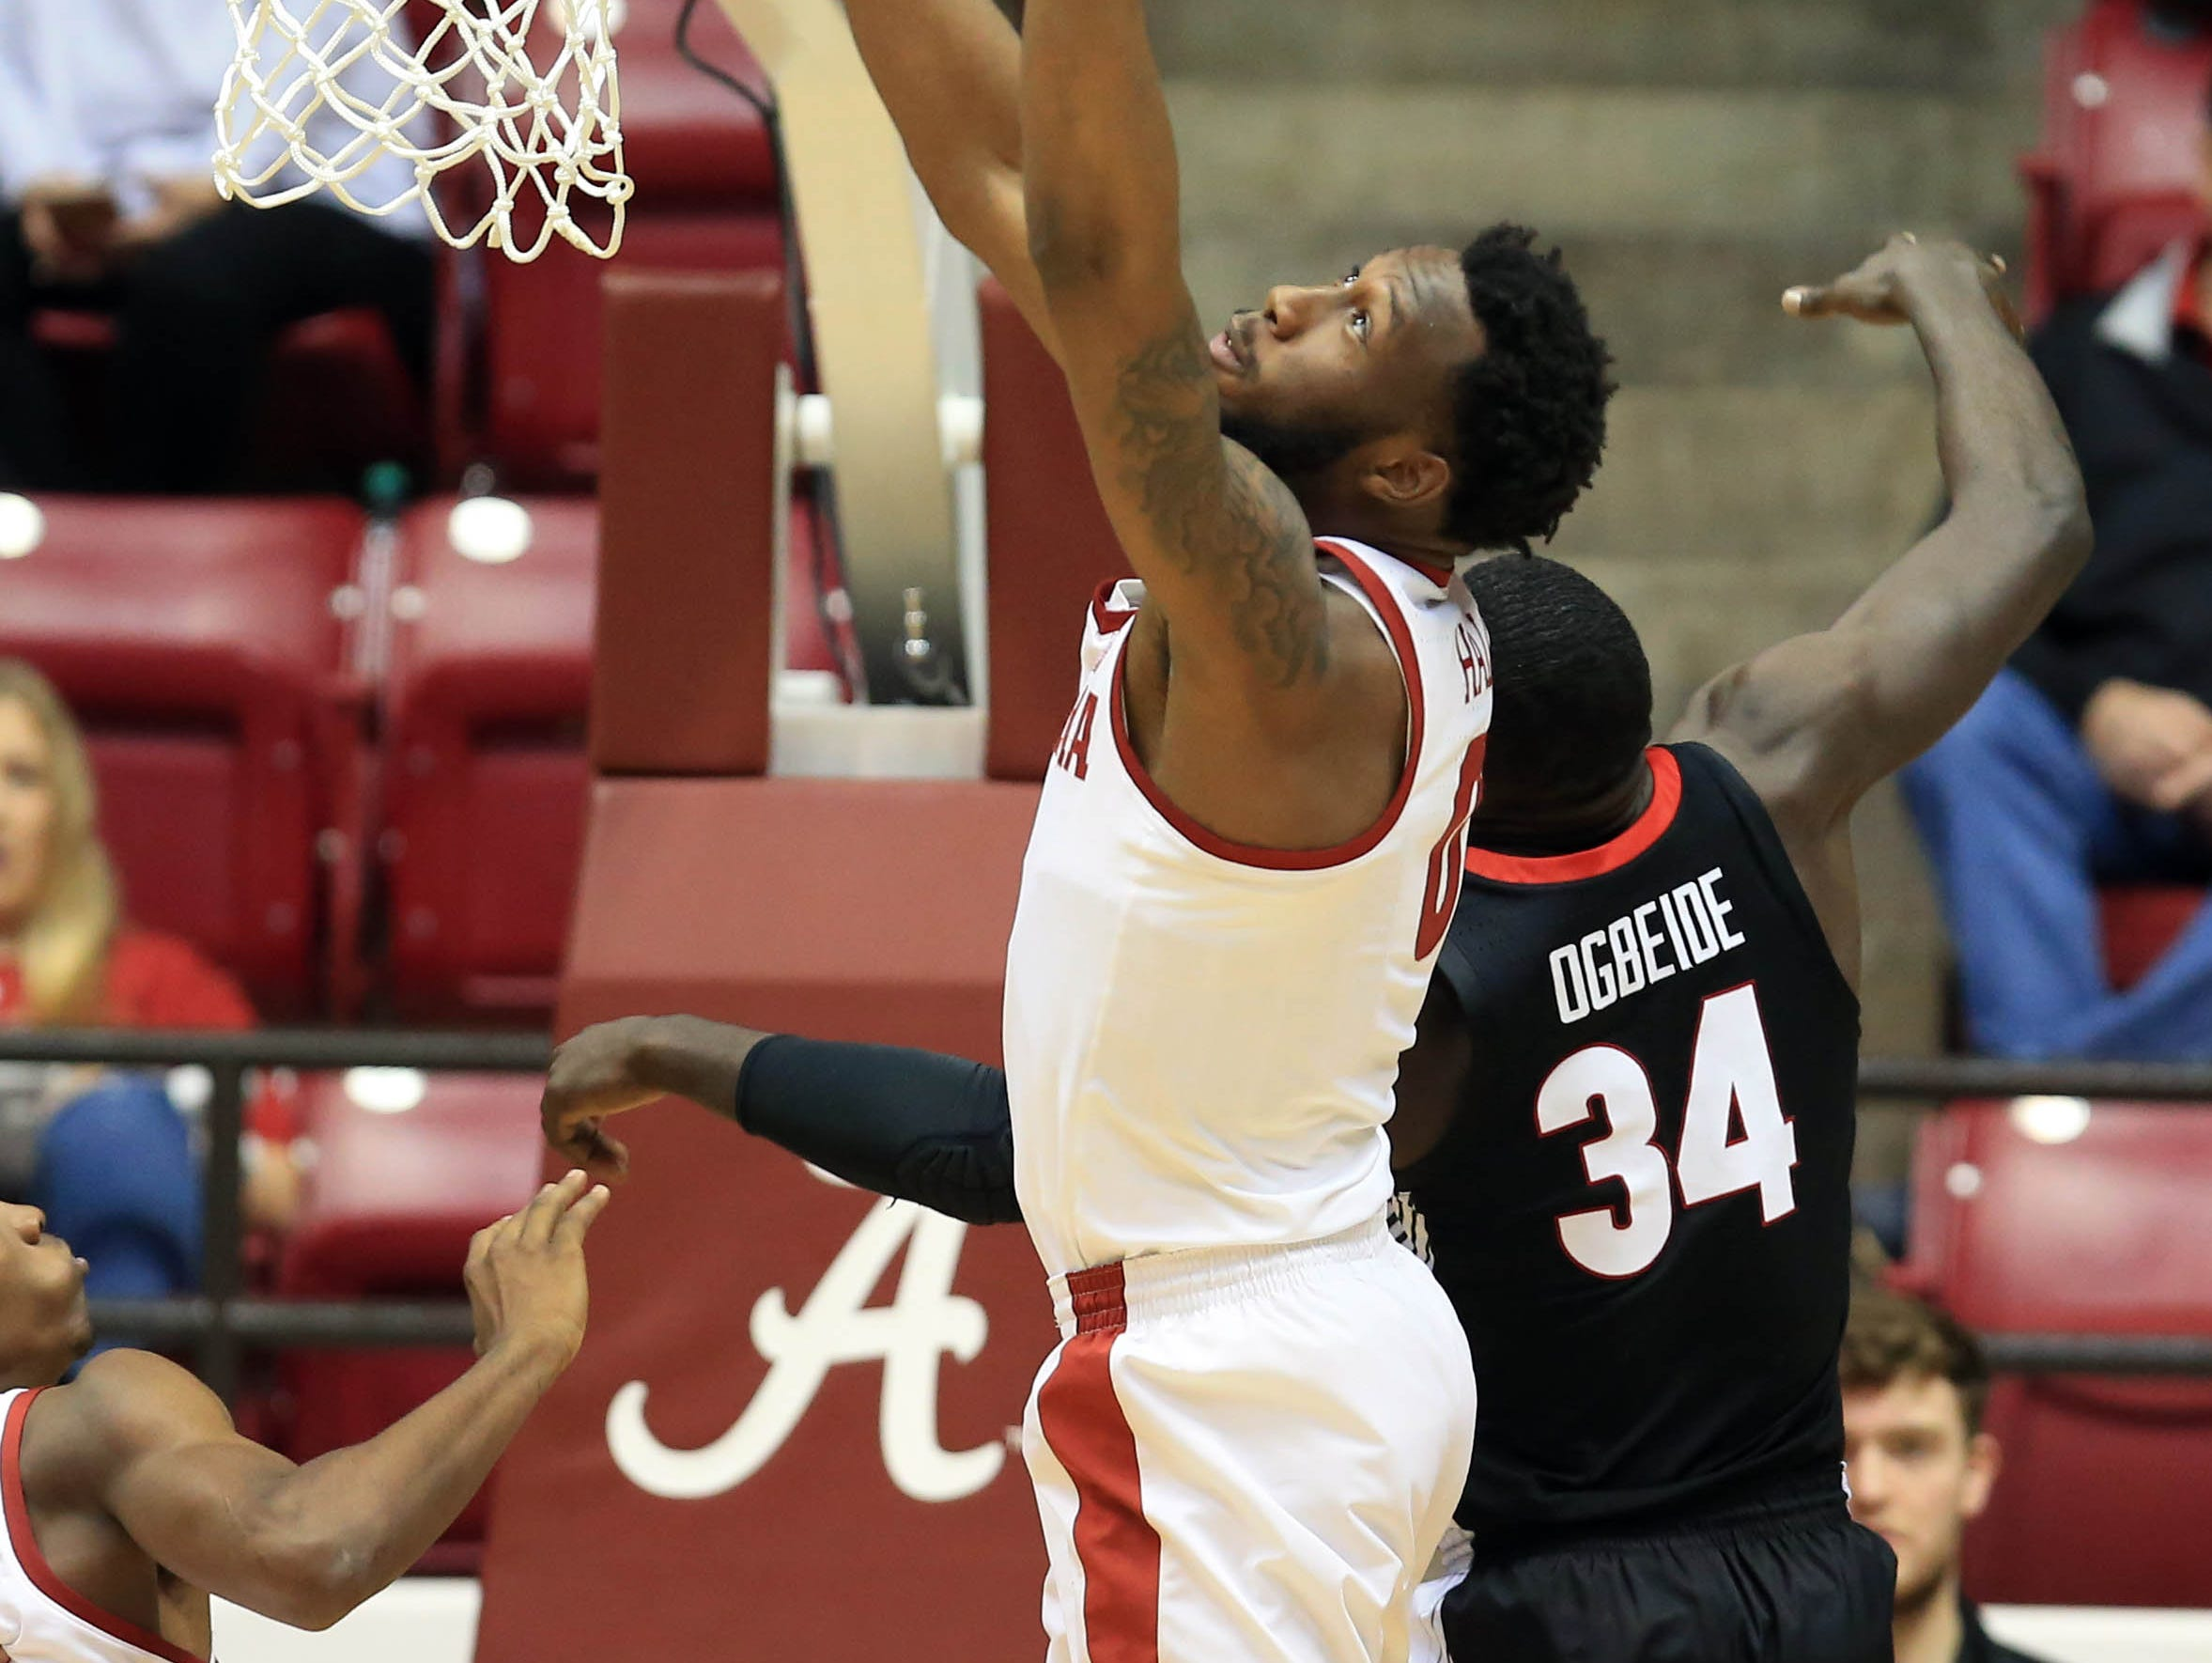 Feb 6, 2019; Tuscaloosa, AL, USA; Alabama Crimson Tide forward Donta Hall (0) grabs a rebound from Georgia Bulldogs forward Derek Ogbeide (34) during the second half at Coleman Coliseum. Mandatory Credit: Marvin Gentry-USA TODAY Sports